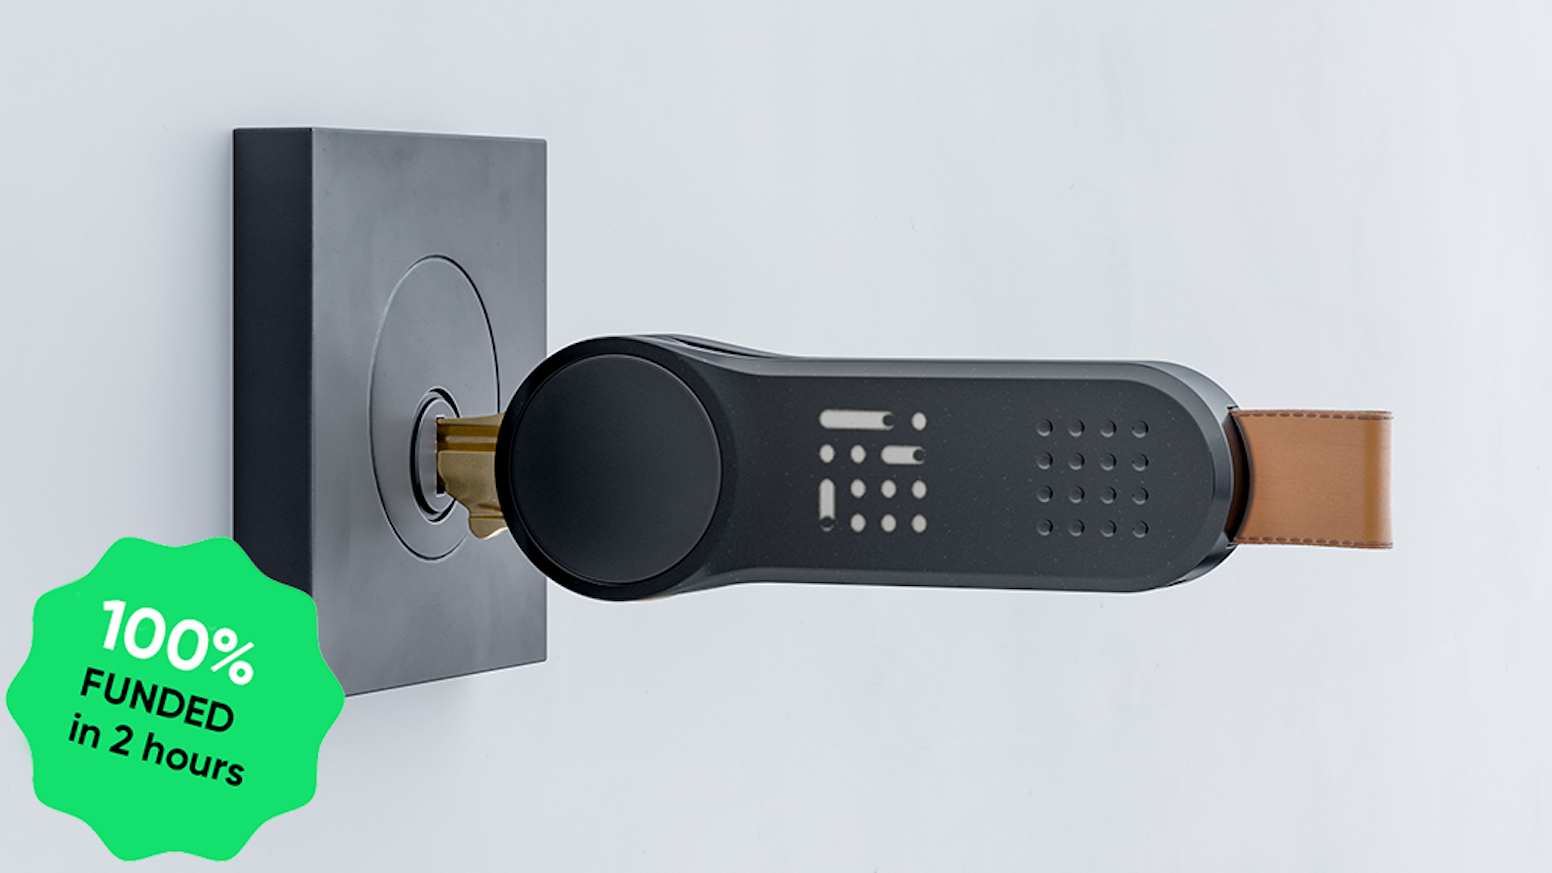 Smart locks features with no door modifications | Easy to install | Fits 90% of keys